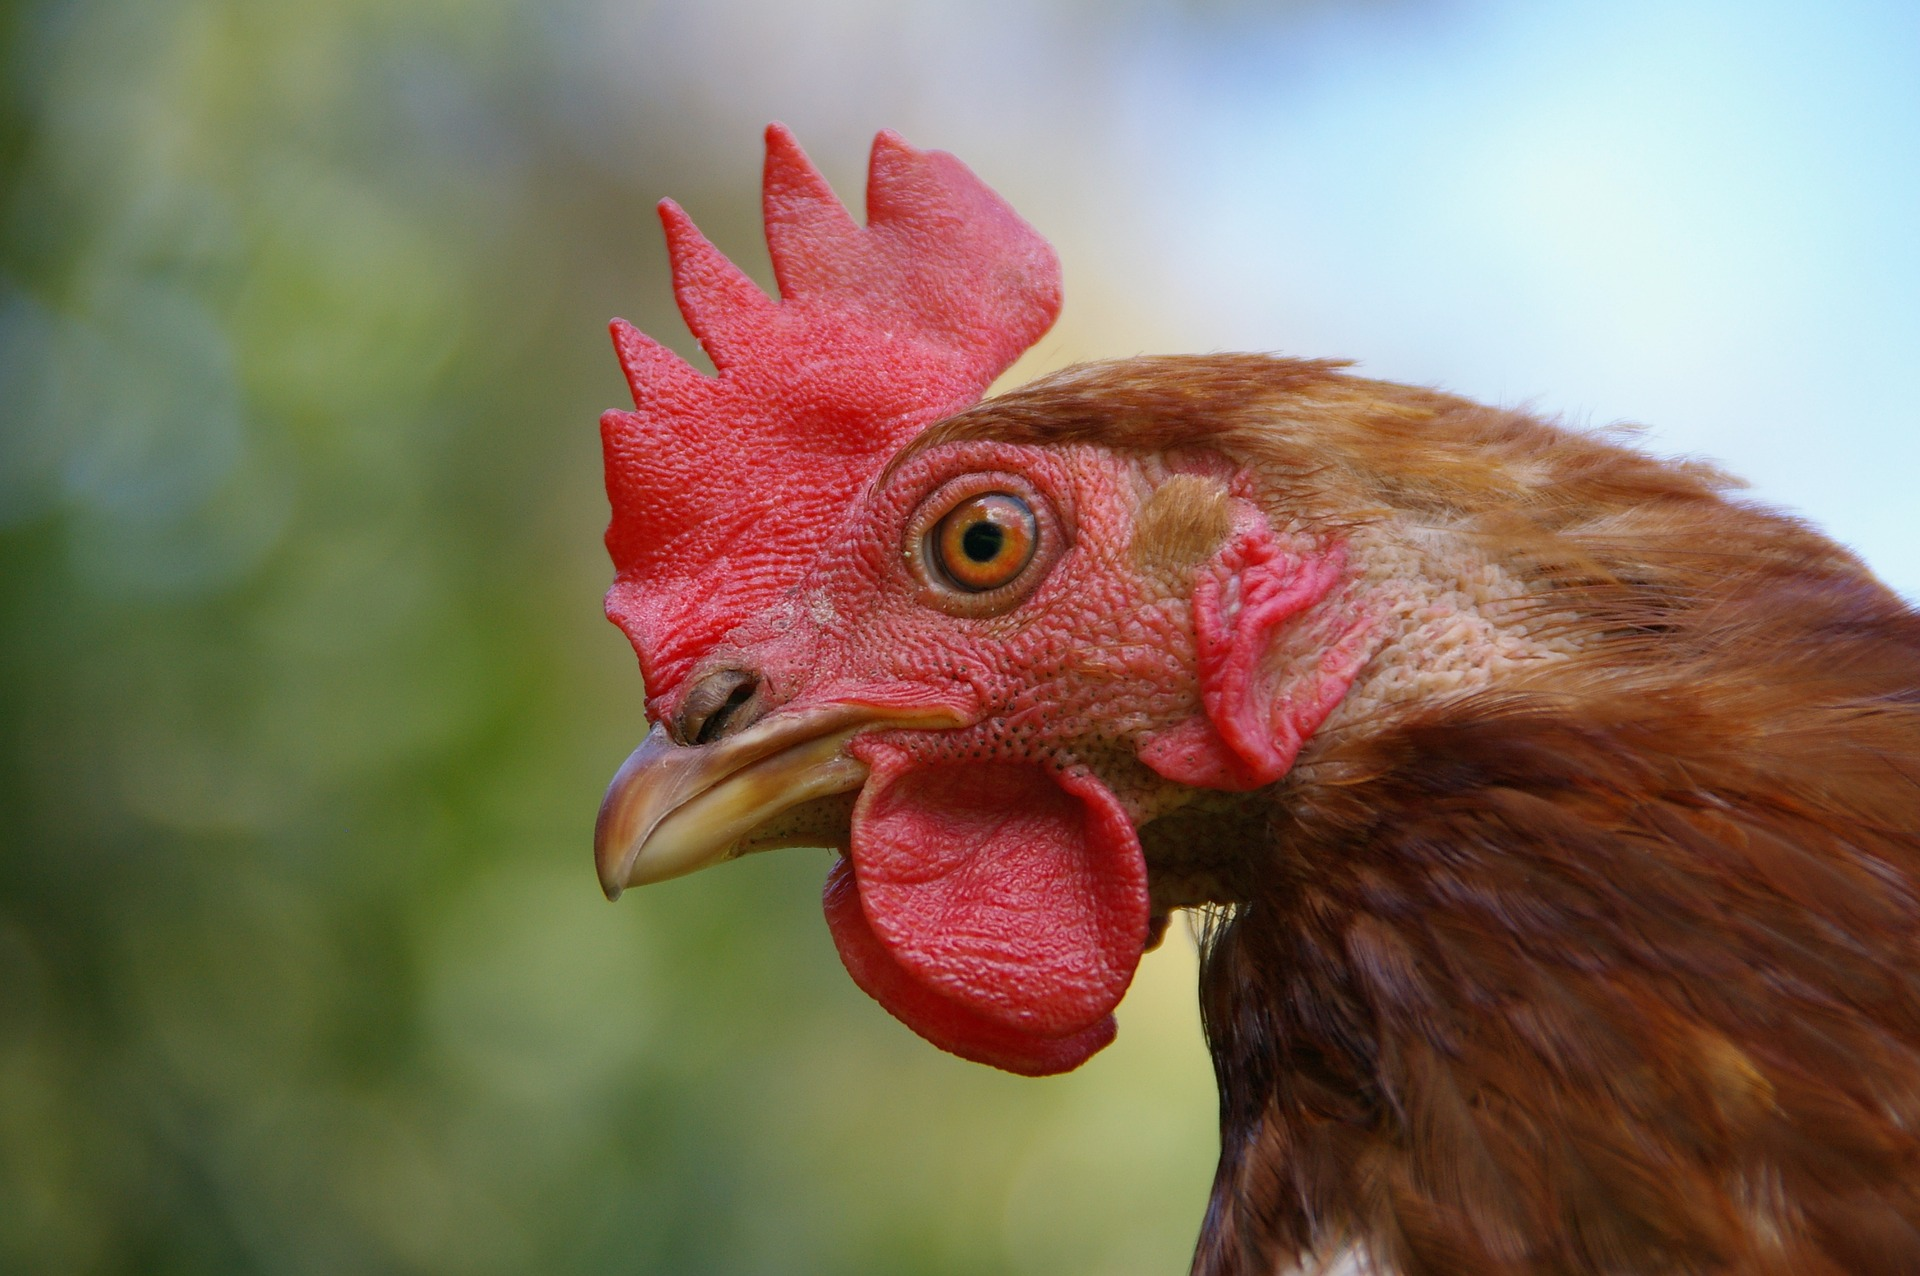 FSA to review food safety claims at United Kingdom chicken supplier